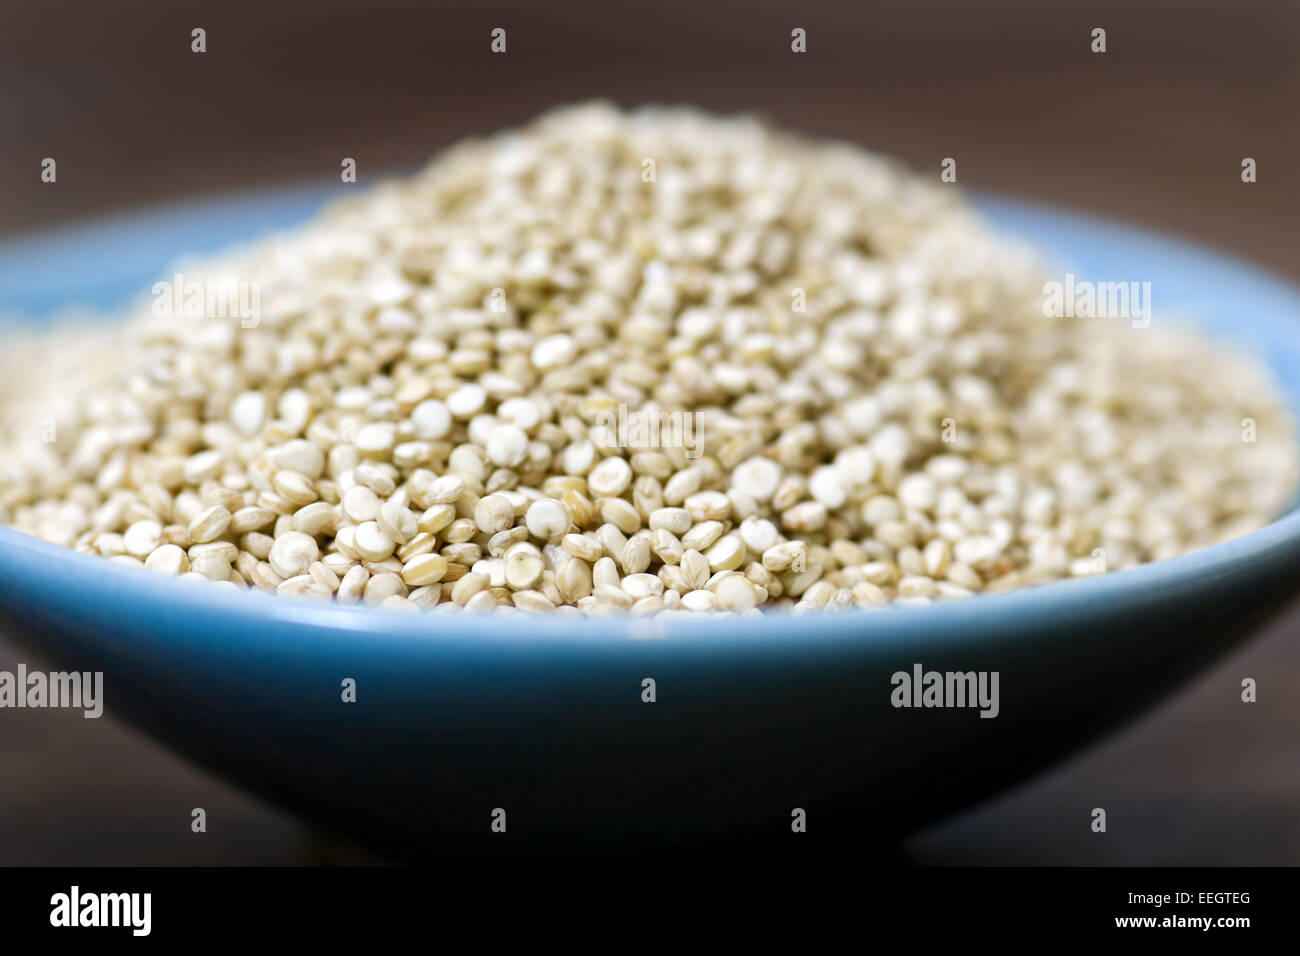 Small blue bowl filled with dried quinoa - Stock Image